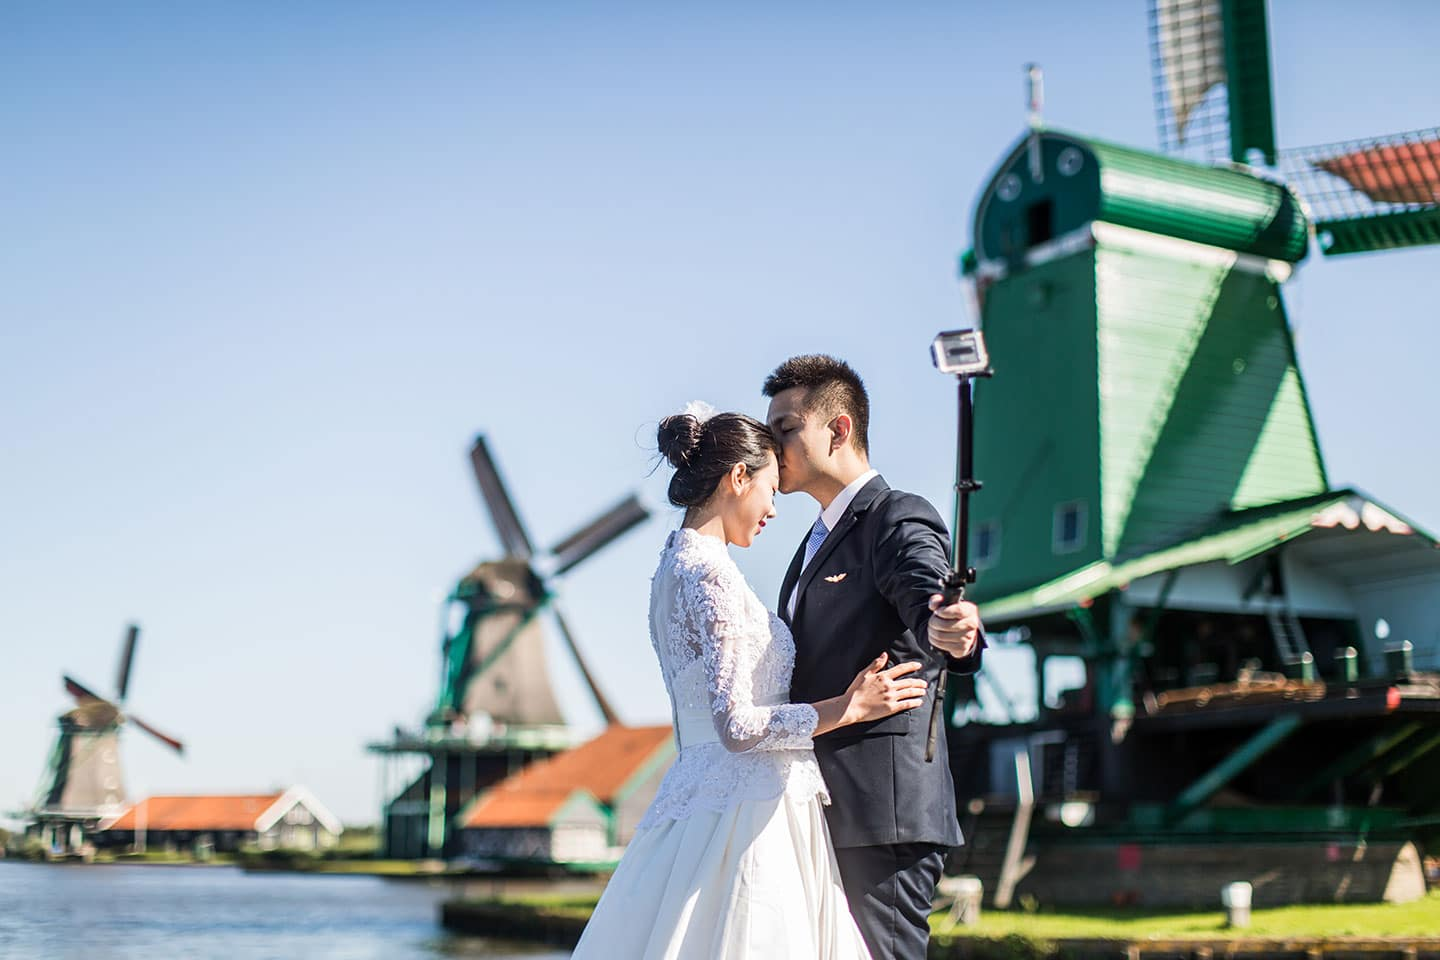 28-windmills-Amsterdam-pre-wedding